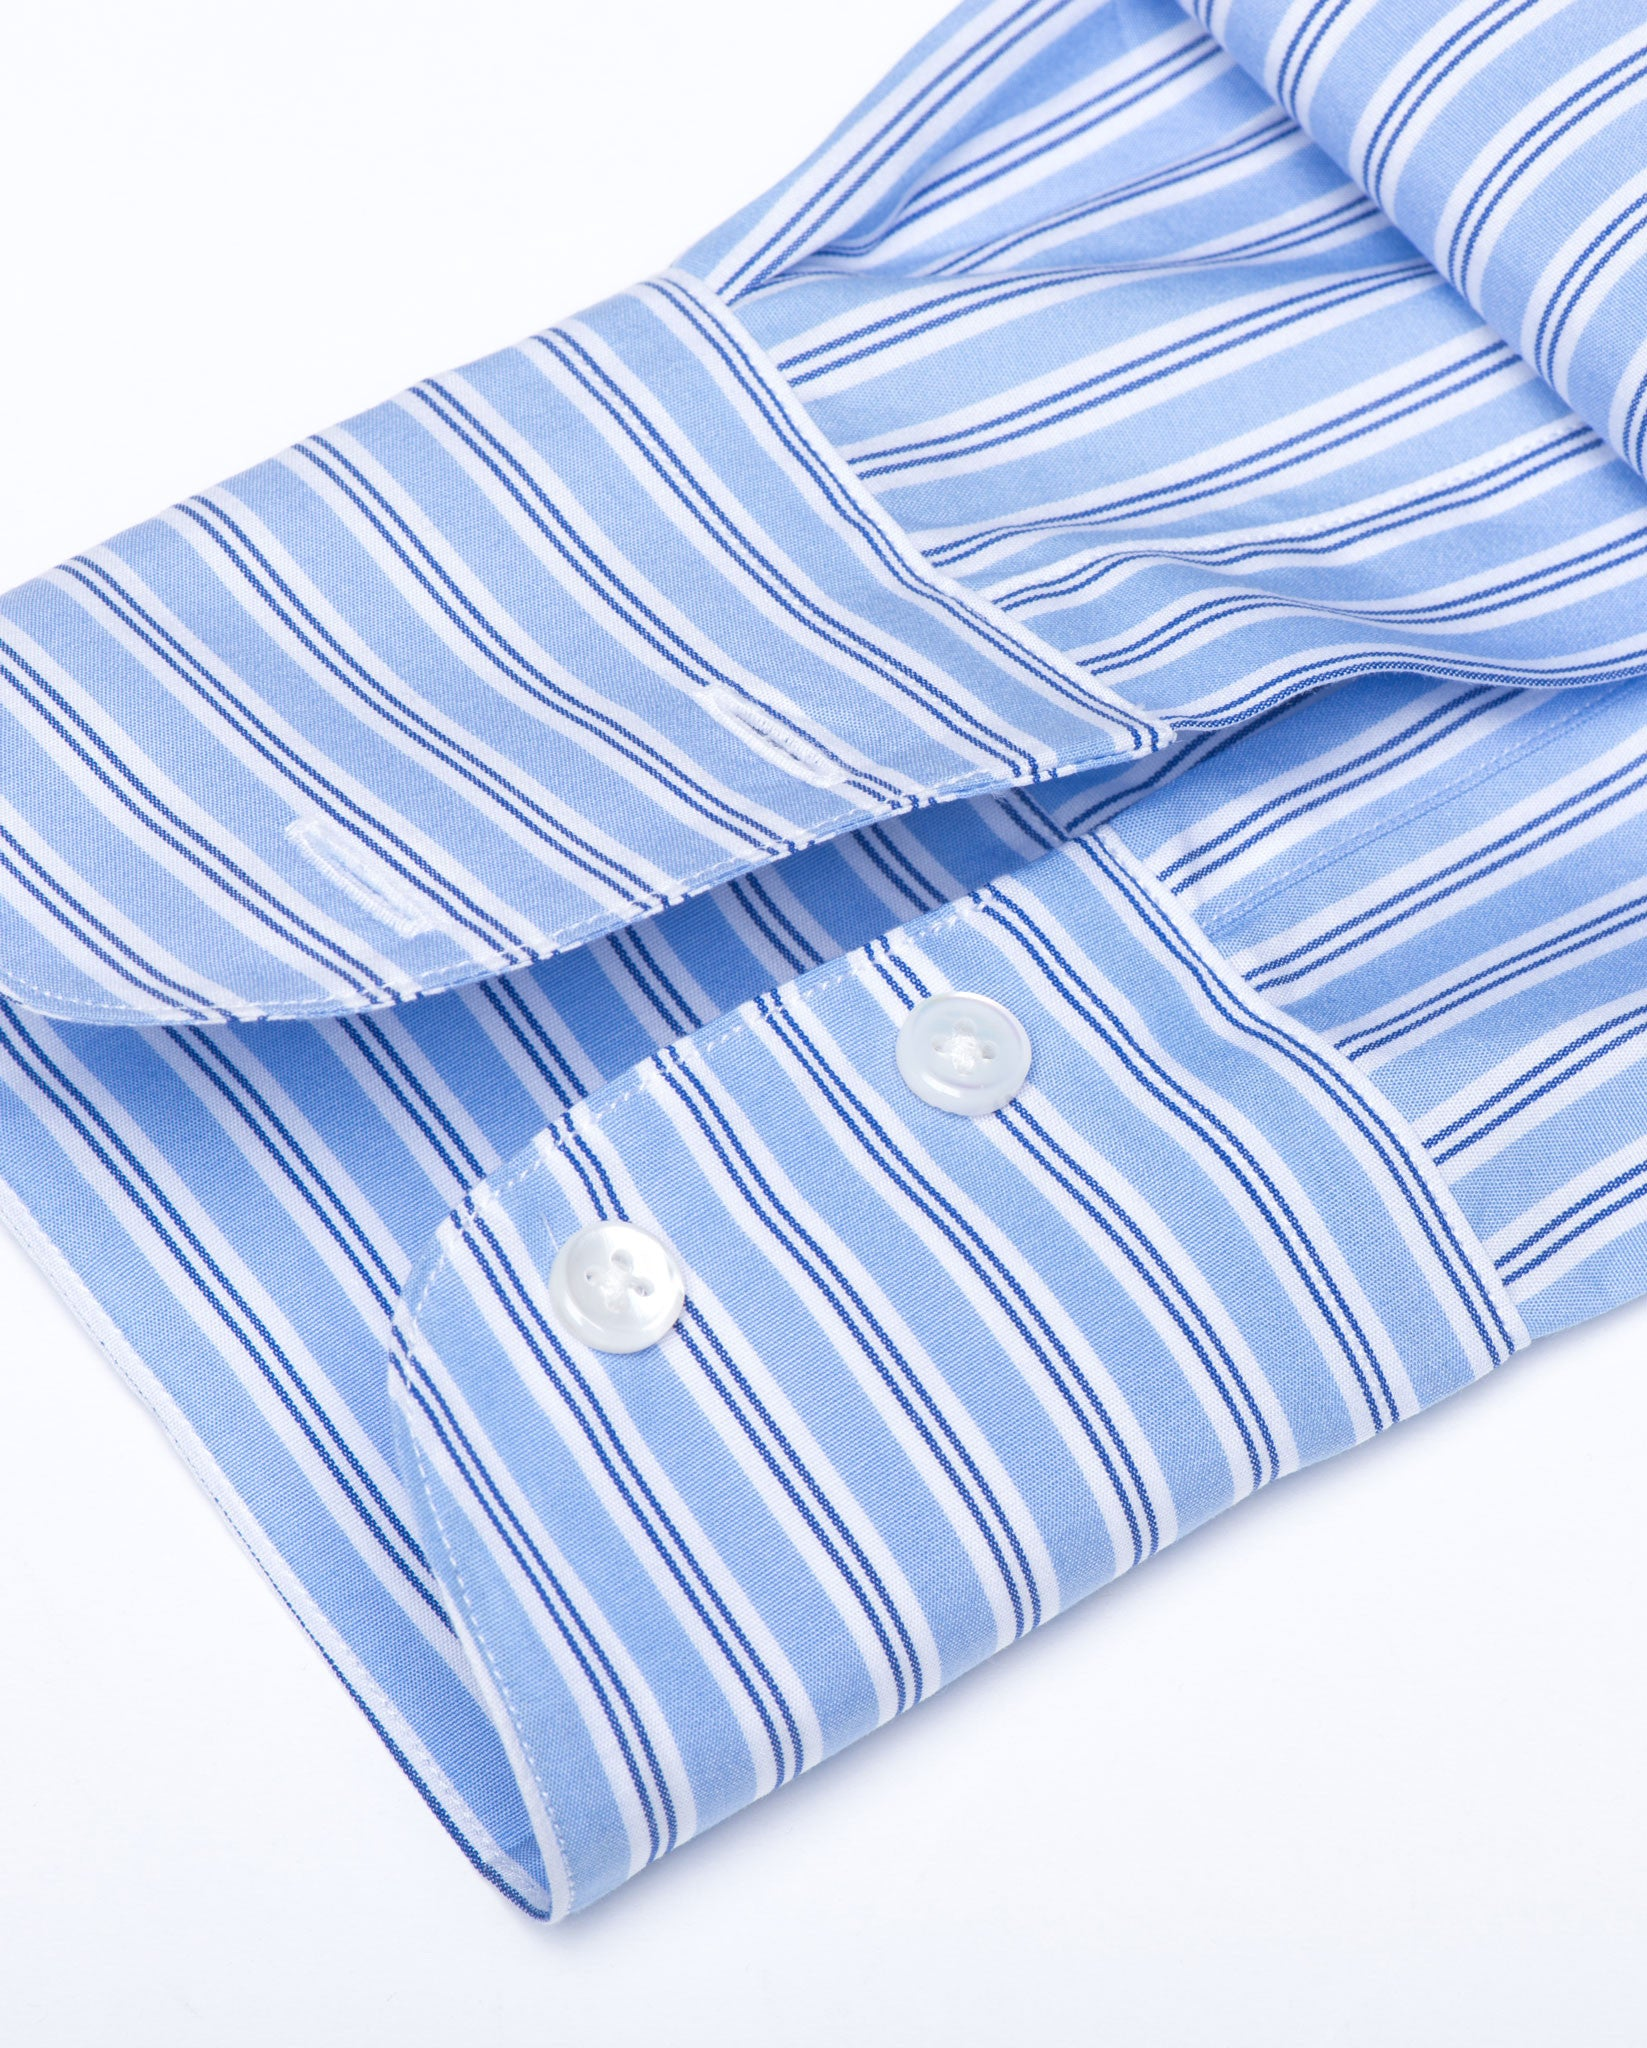 Tailored Shirt - Blue Bankers Stripe Women's Button Down by Double ...